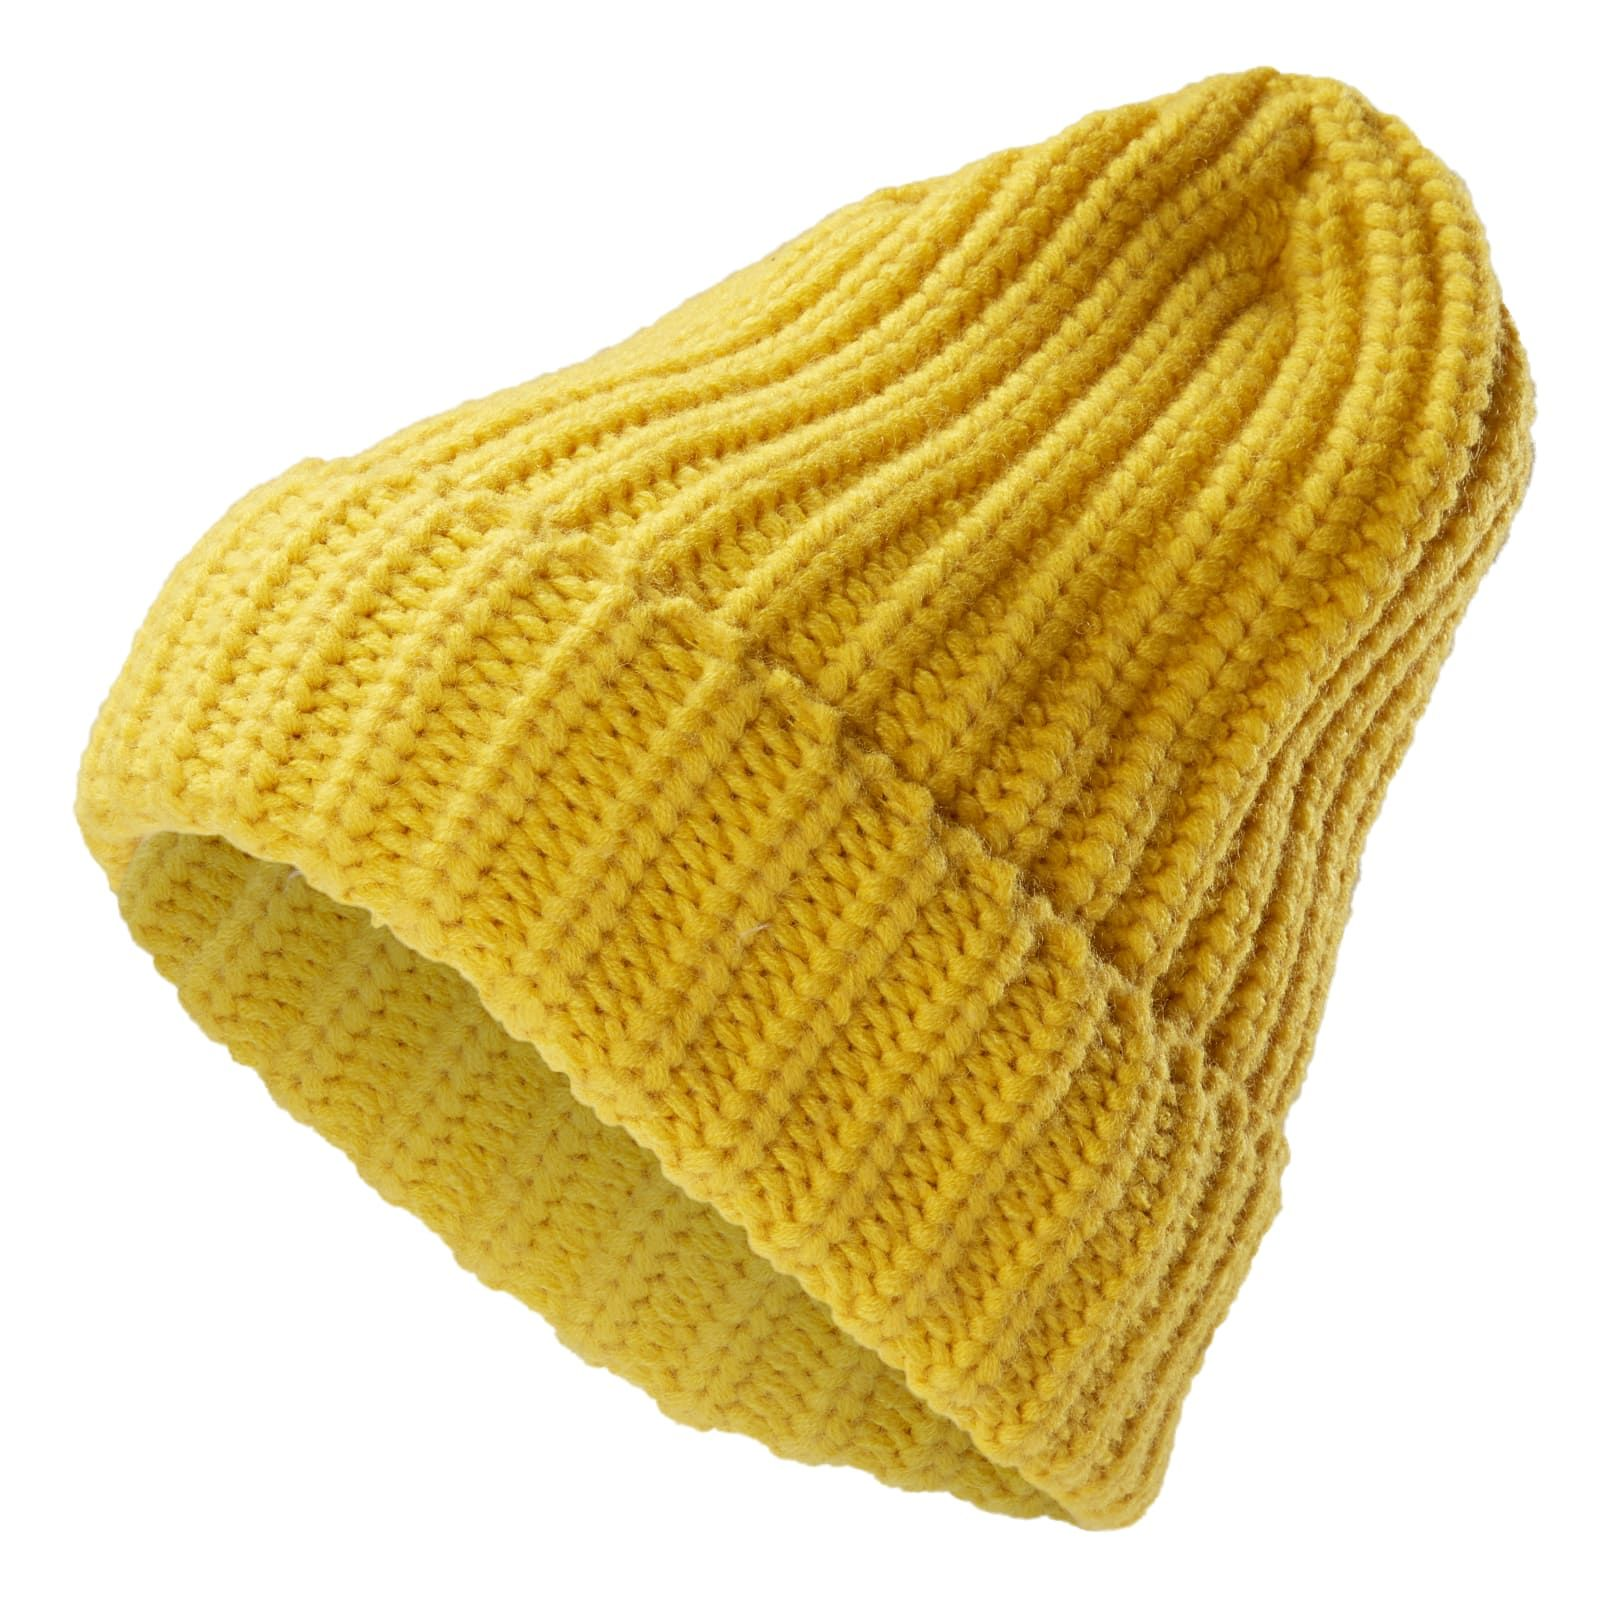 Photo of Fee Yellow Chunky Knit Montagna Beanie  | In stock! | Fawler